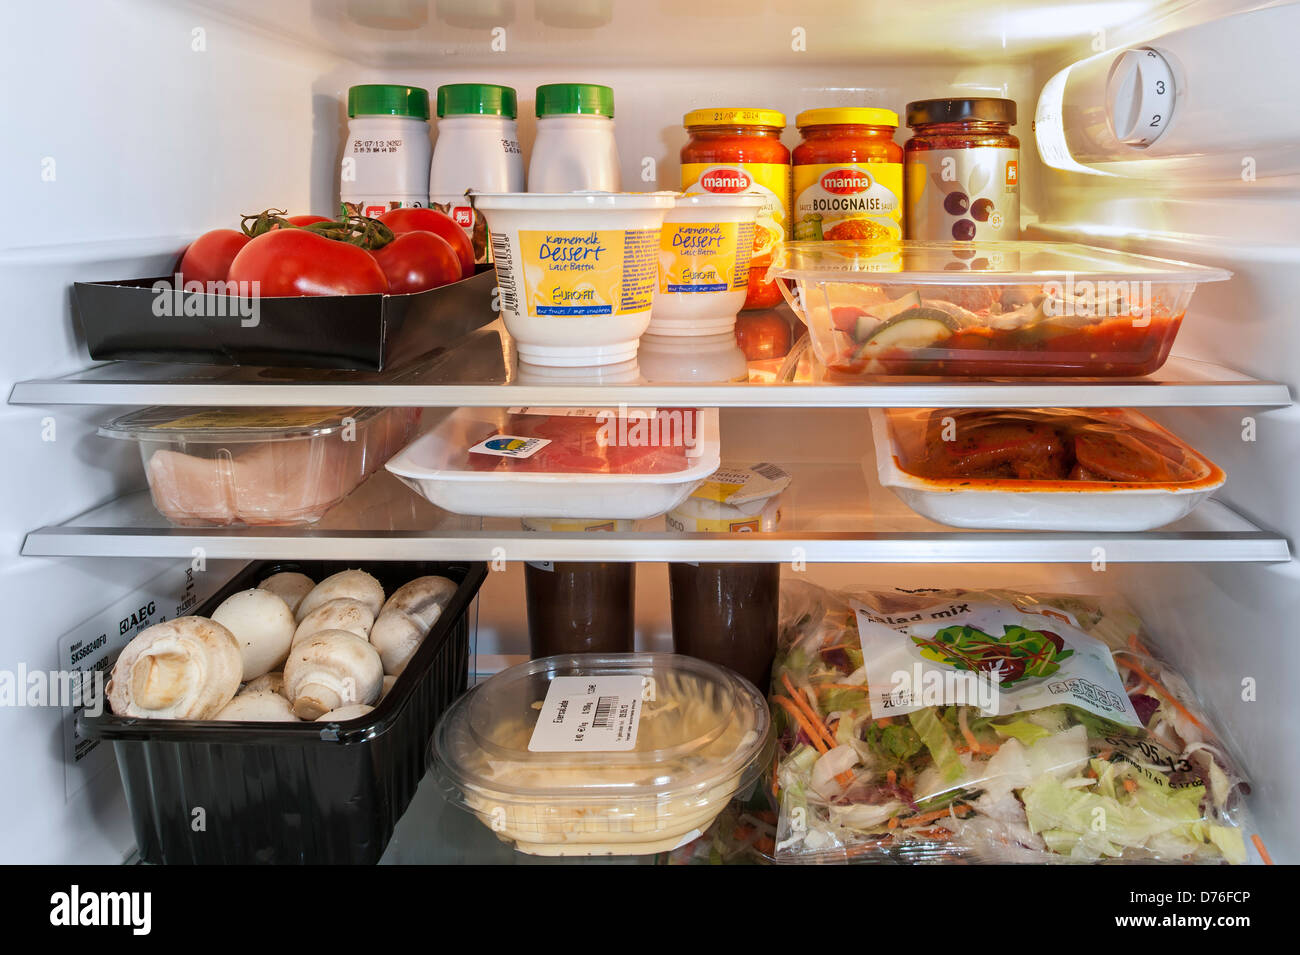 Cooled food in open fridge / refrigerator in kitchen - Stock Image